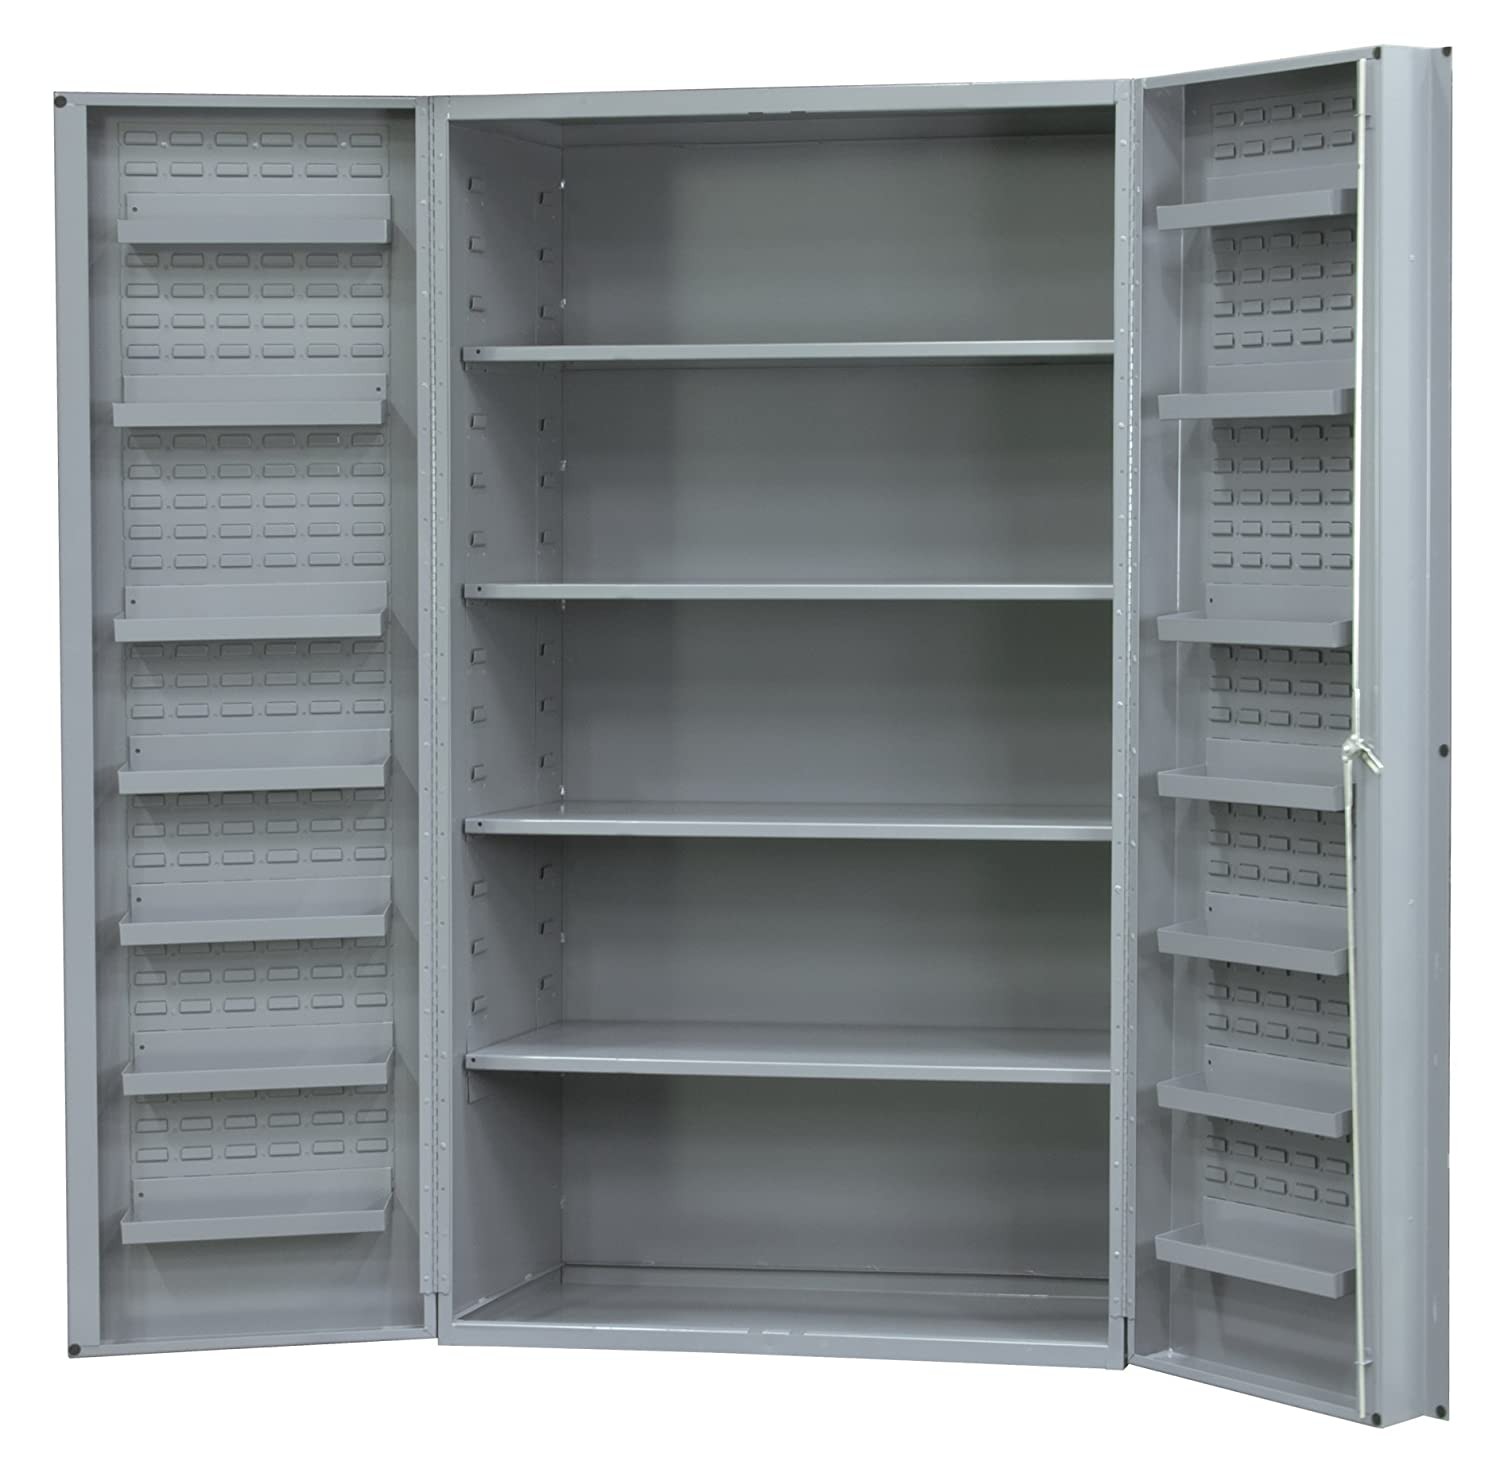 Durham Heavy Duty Welded 14 Gauge Steel Cabinet with 12 Door Shelves